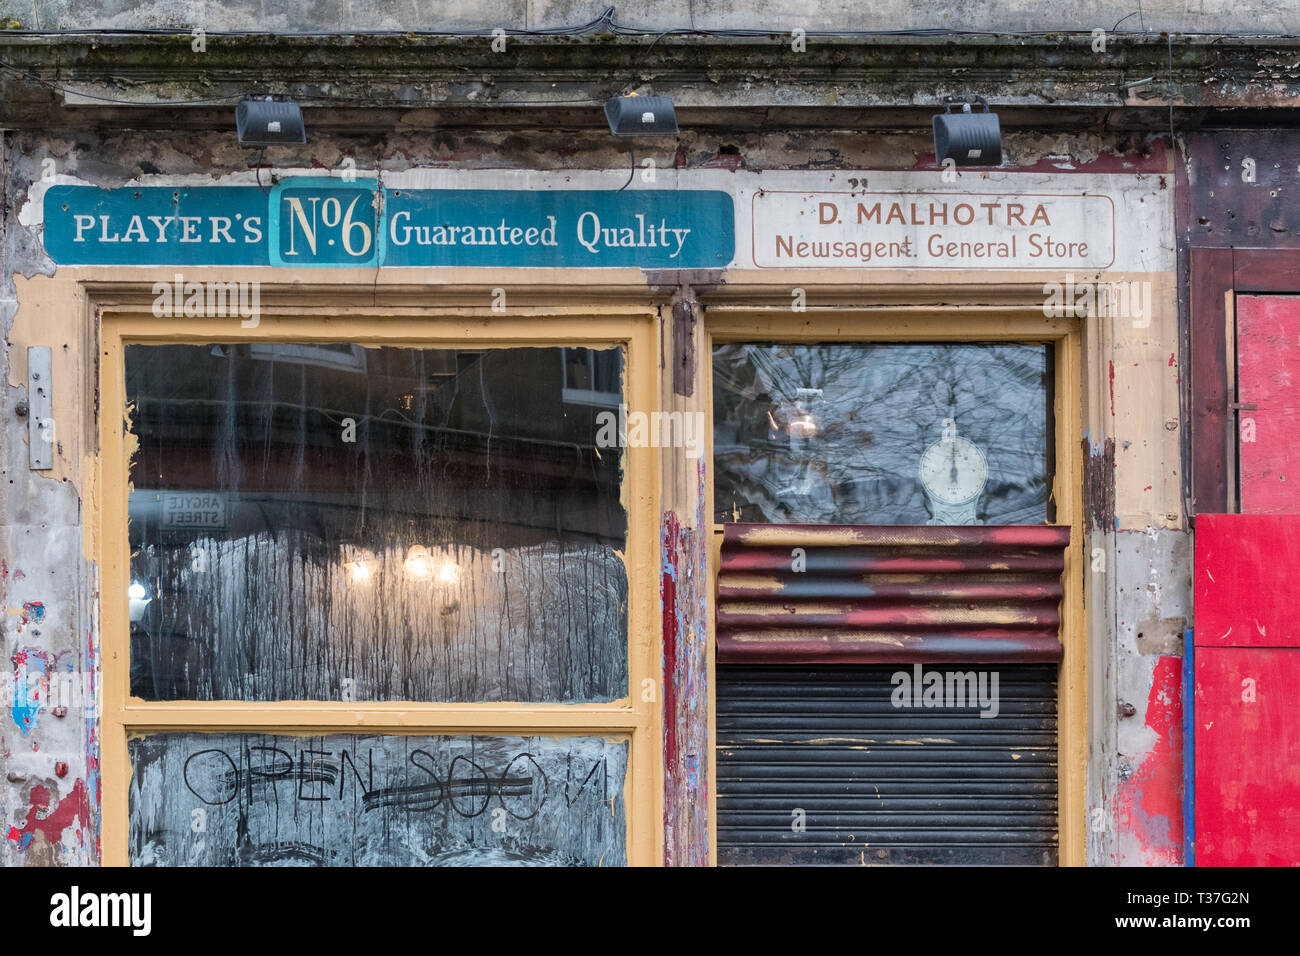 Ghost shop sign in Finnieston, Glasgow showing old cigarette advertising for Players No6 Stock Photo